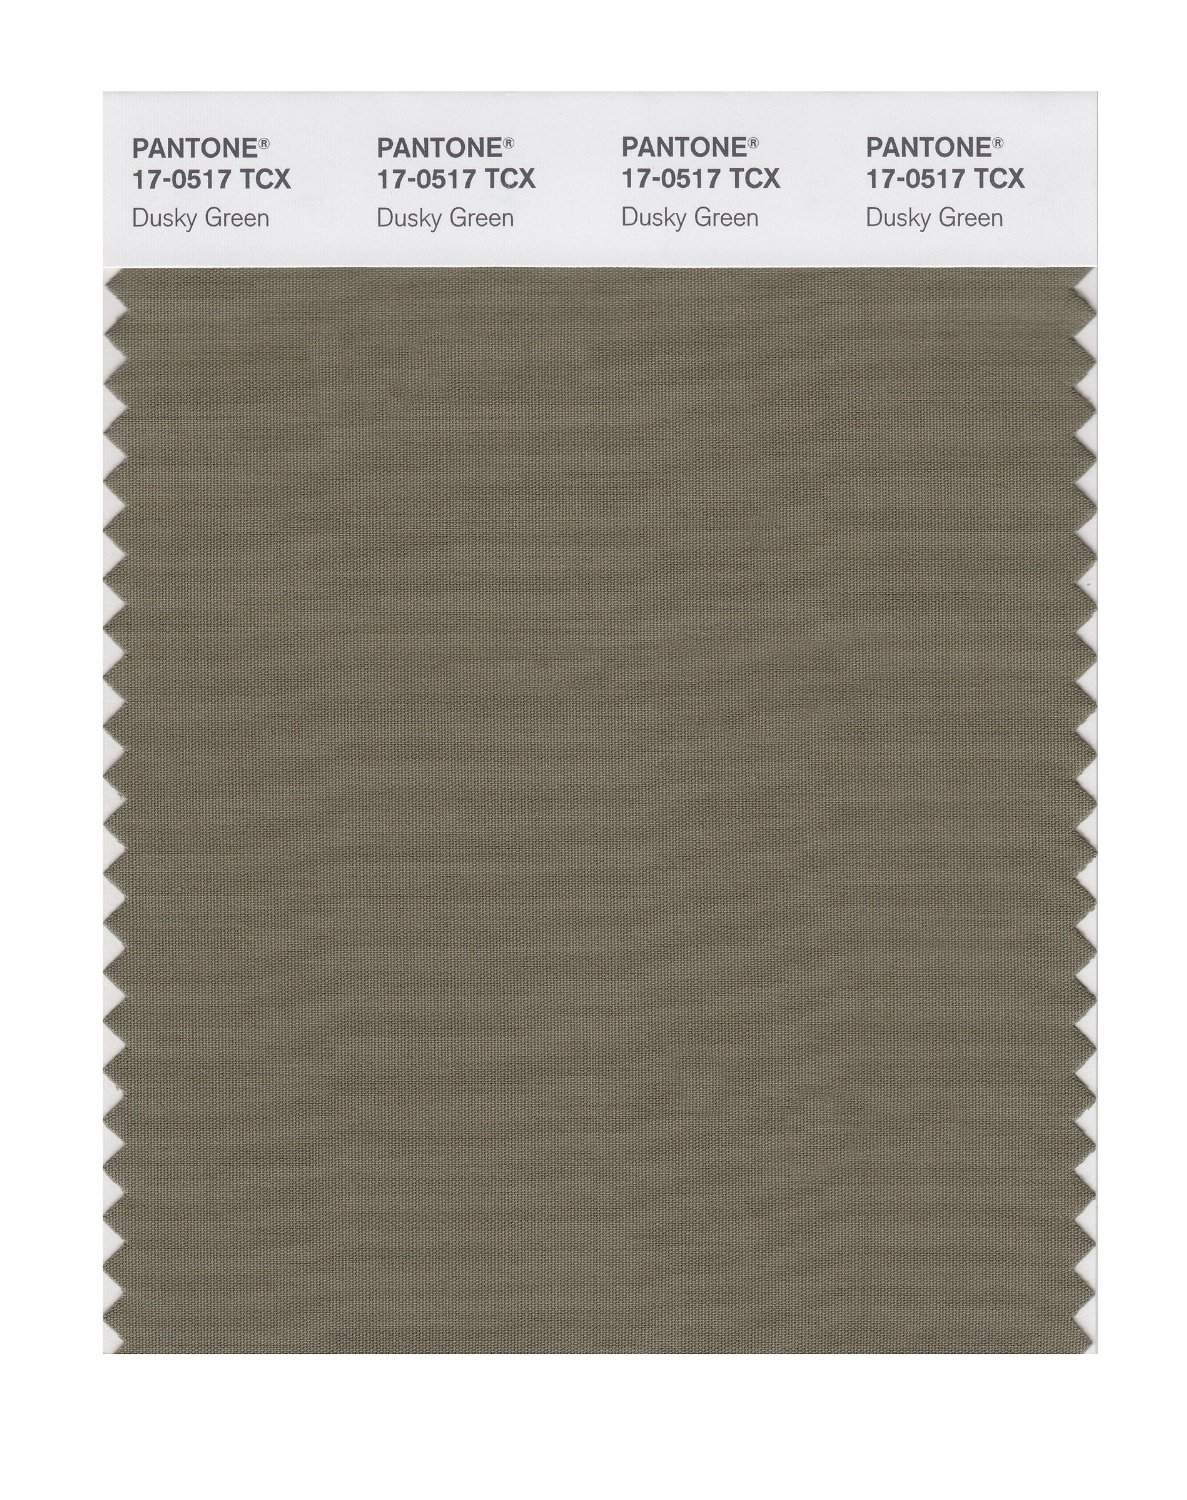 Pantone Smart Swatch 17-0517 Dusky Green